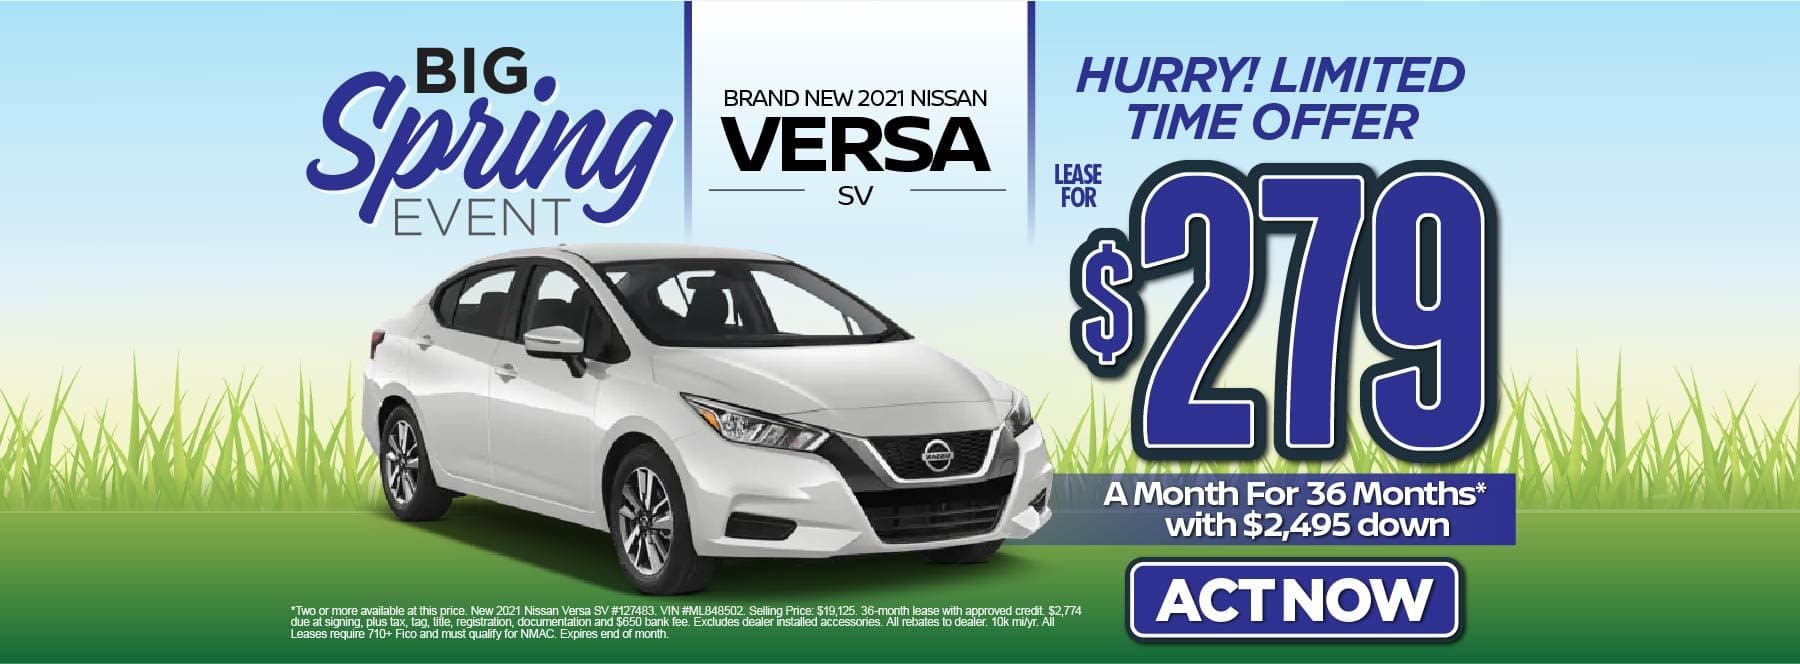 New 2021 Nissan Versa SV – Lease for $279/mo for 36 months with $2,495 Down* Act now.